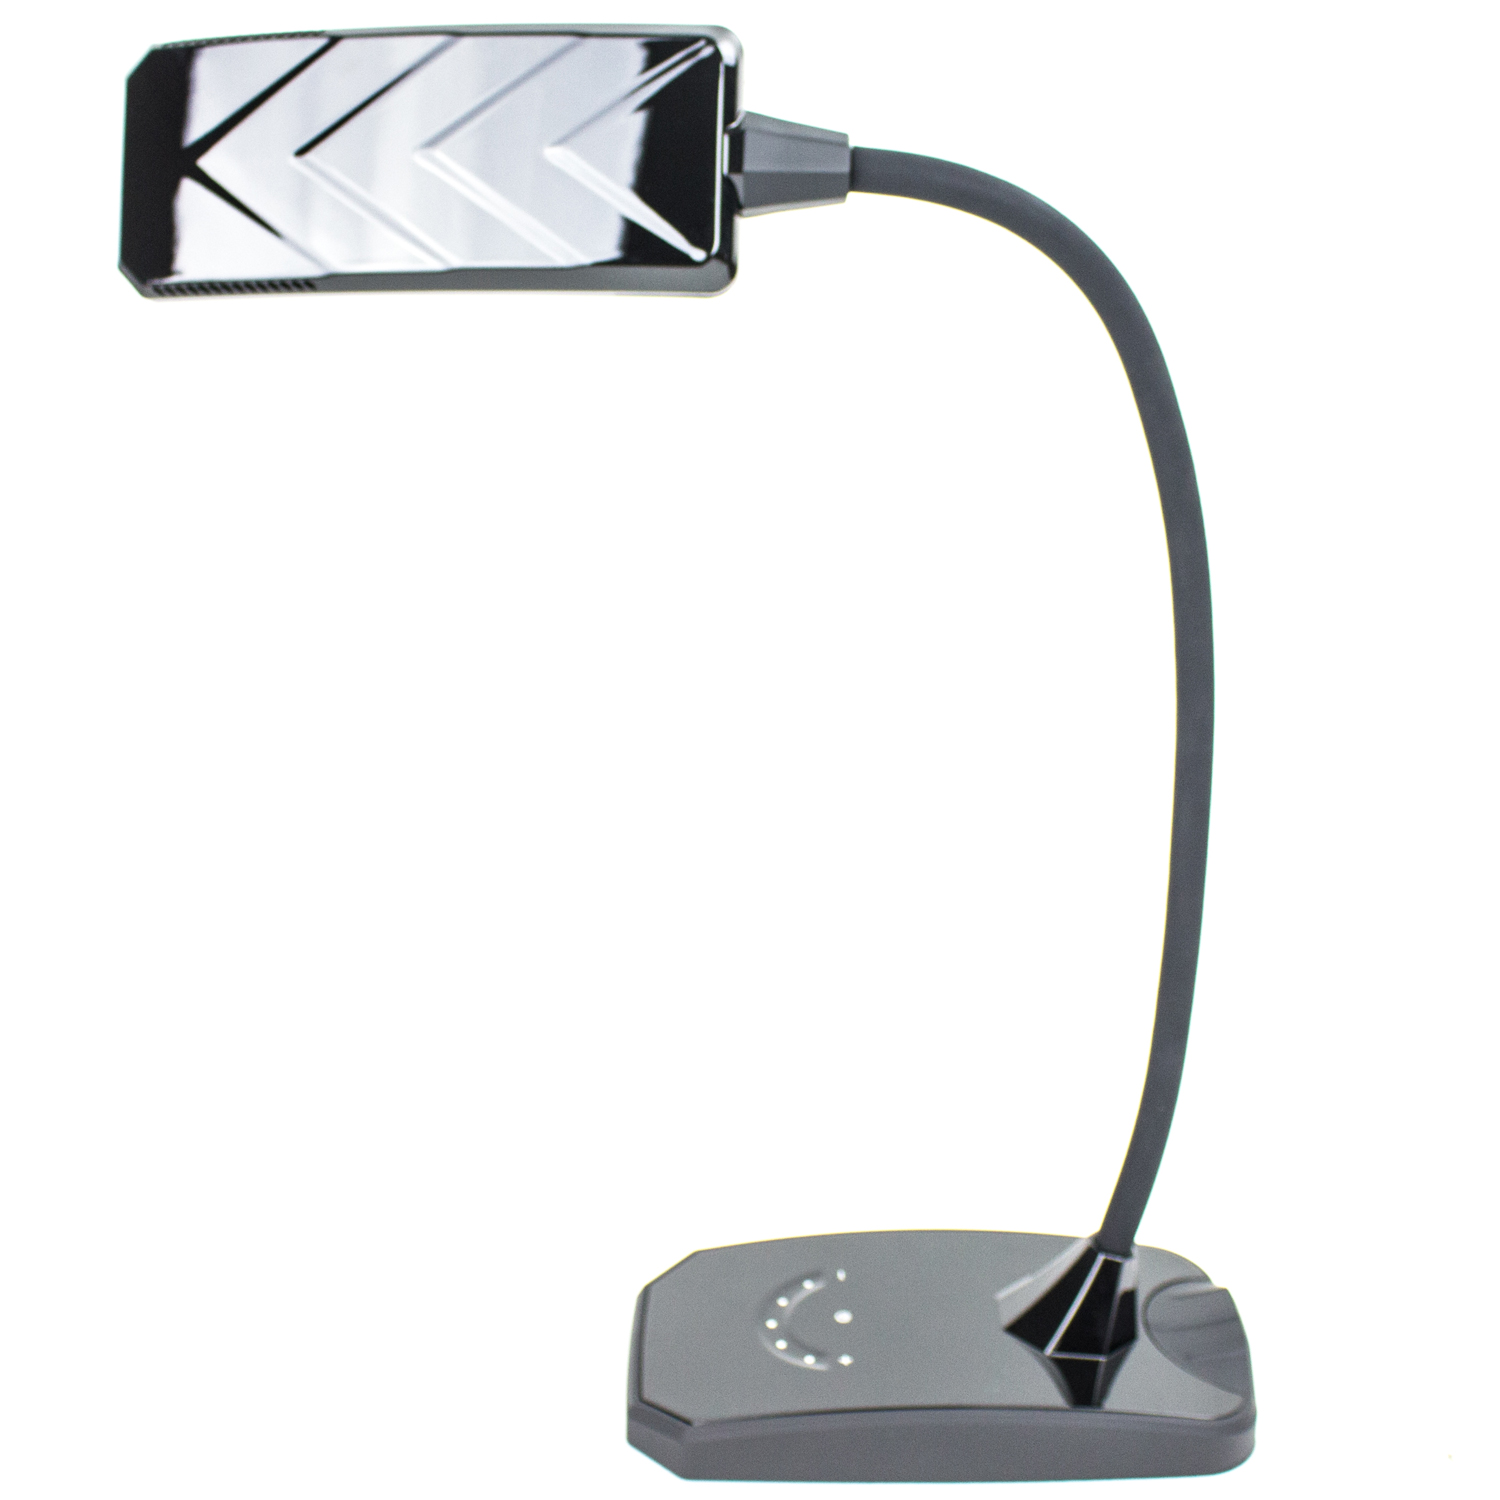 6w led desk lamp w dimmer and usb charging port outlet. Black Bedroom Furniture Sets. Home Design Ideas